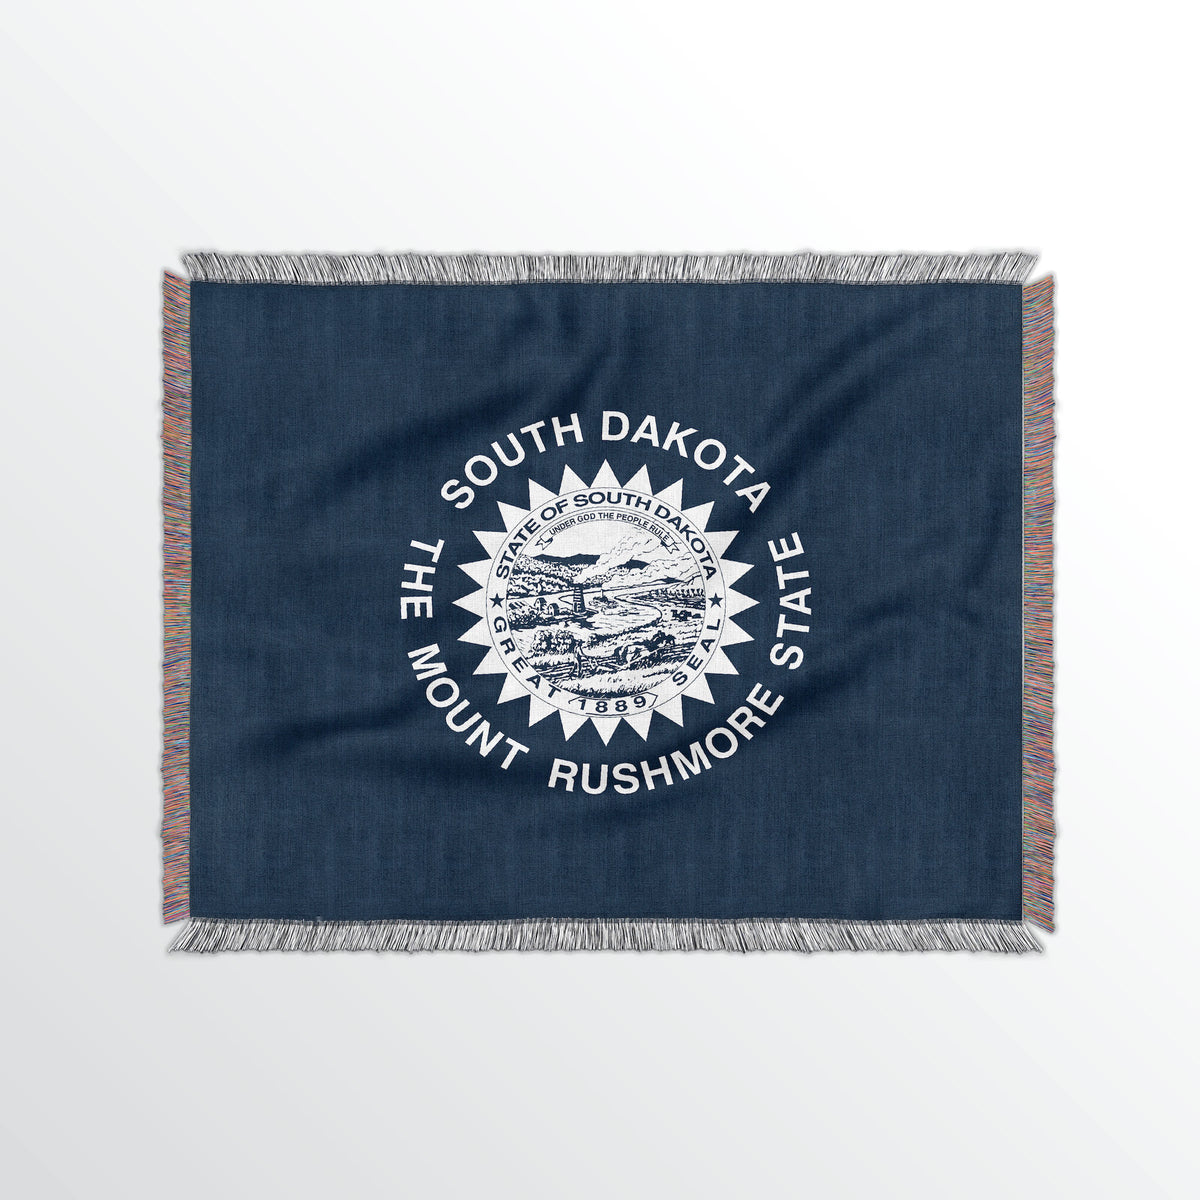 South Dakota State Woven Cotton Blanet - Point Two Design